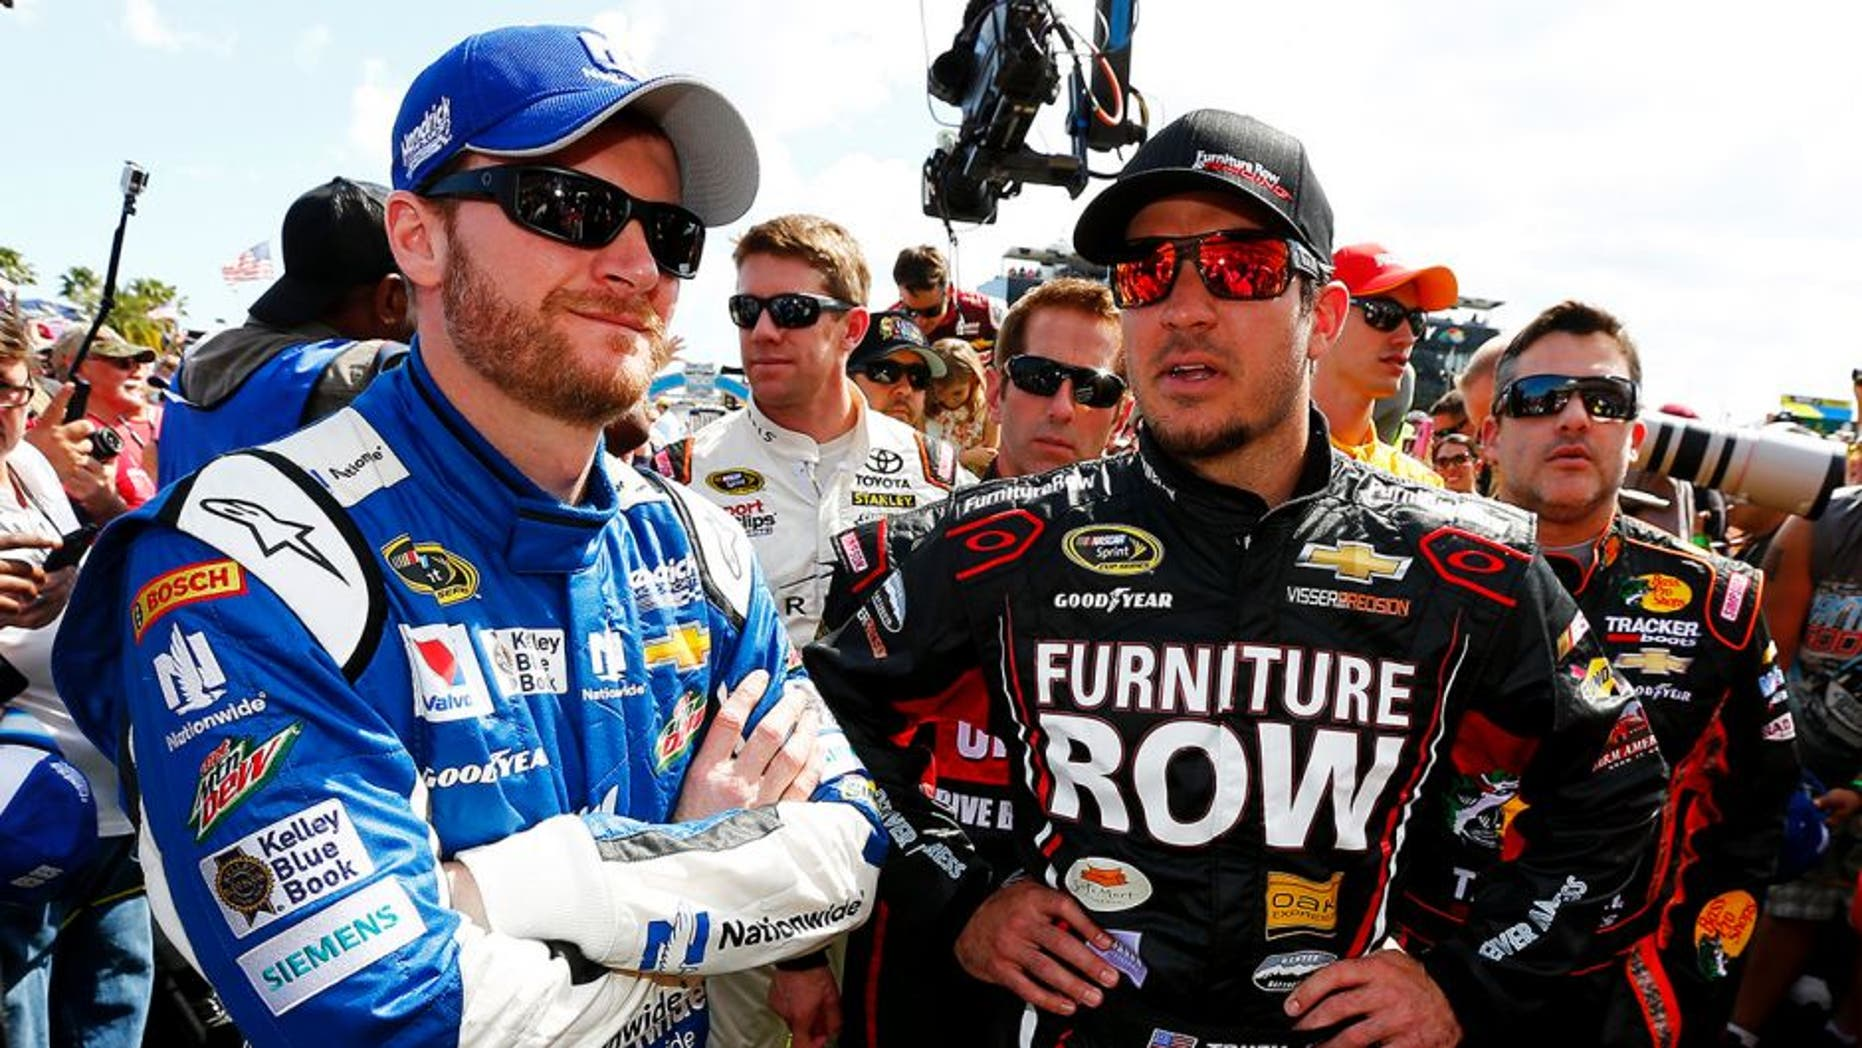 DAYTONA BEACH, FL - FEBRUARY 22: Dale Earnhardt Jr., driver of the #88 Nationwide Chevrolet, left, and Martin Truex Jr., driver of the #78 Furniture Row/Visser Percision Chevrolet, take part in pre-race ceremonies for the NASCAR Sprint Cup Series 57th Annual Daytona 500 at Daytona International Speedway on February 22, 2015 in Daytona Beach, Florida. (Photo by Jonathan Ferrey/NASCAR via Getty Images)